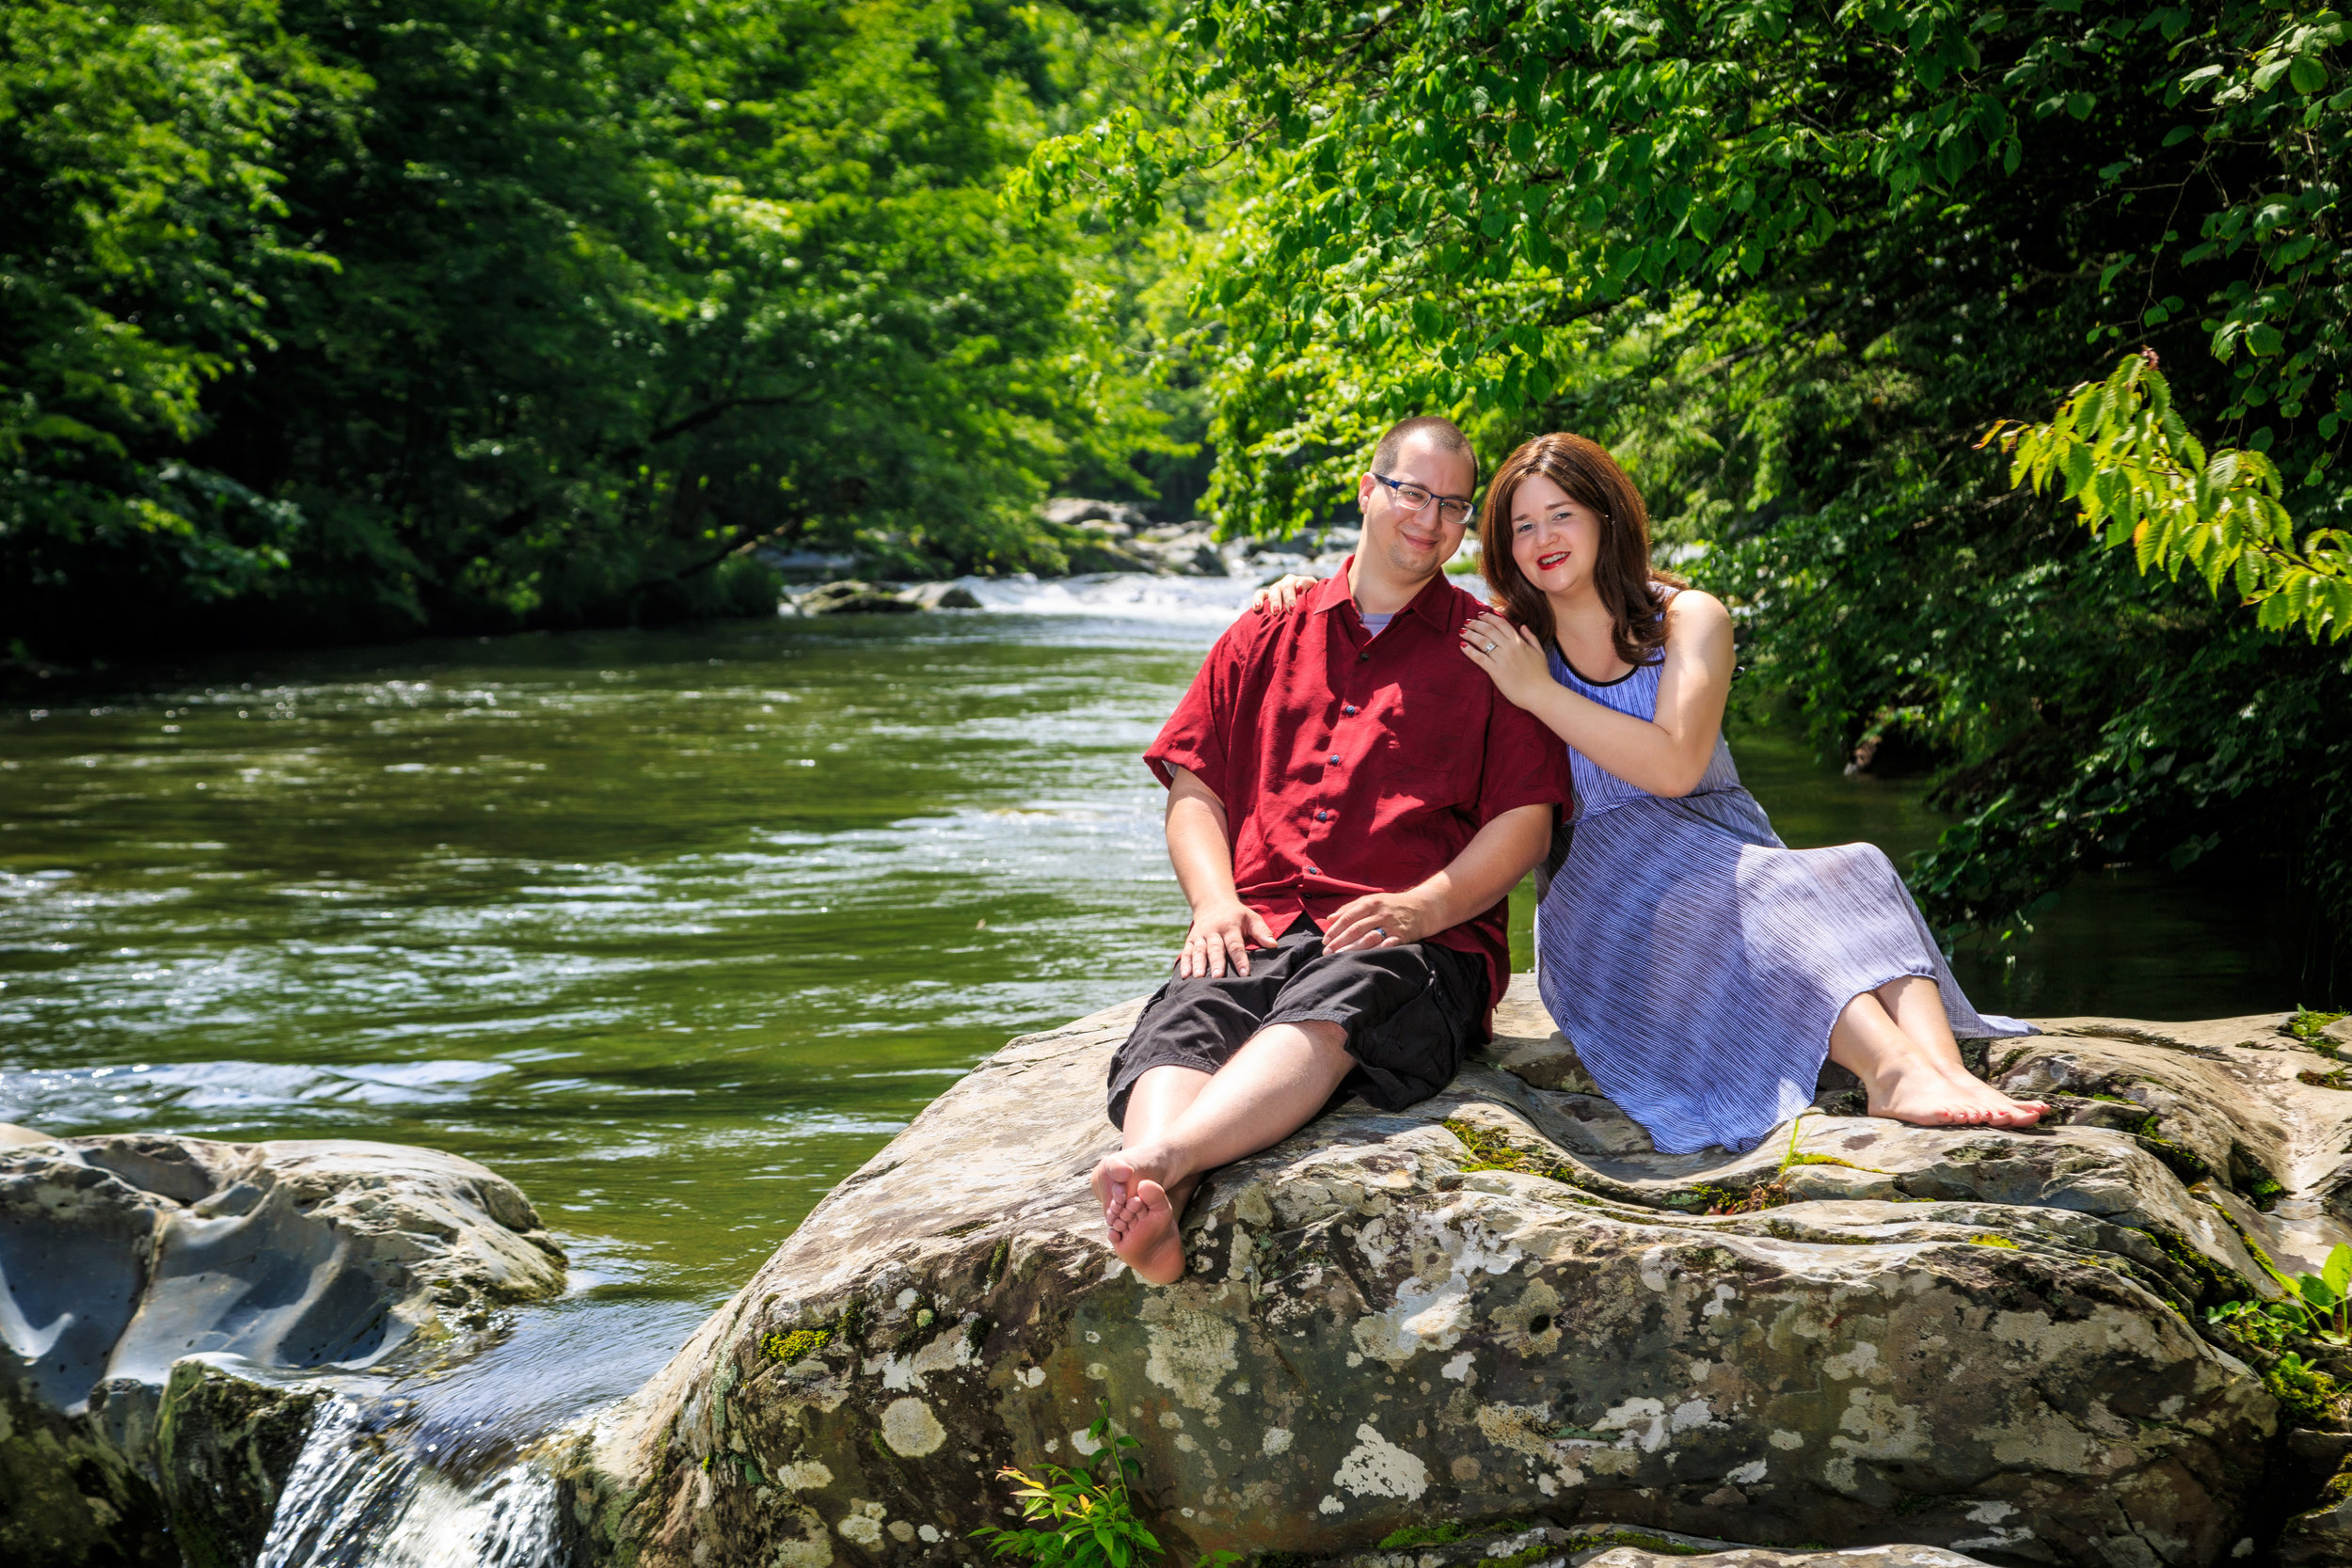 """I couldn't be happier…"" - My wife had found this photographer on a website for the Gatlinburg area for our 10-year anniversary and we really didn't know what to expect. However once we met the photographers we were at ease when we went to the location spot in the mountain creekside. It took a lot of hard work and patience and my wife and I couldn't be happier with the rough previews of our photos. I've read most the reviews on Google but you really do get what you pay for professional photography at its best. From different camera lenses,angles, and waiting to get the perfect shot. When we did a preview of our photos the next day you would swear they were fake scenery background and yet they are not.I would recommend them to any visitor or someone who is looking to get photos done.- Nathan Donaldson"